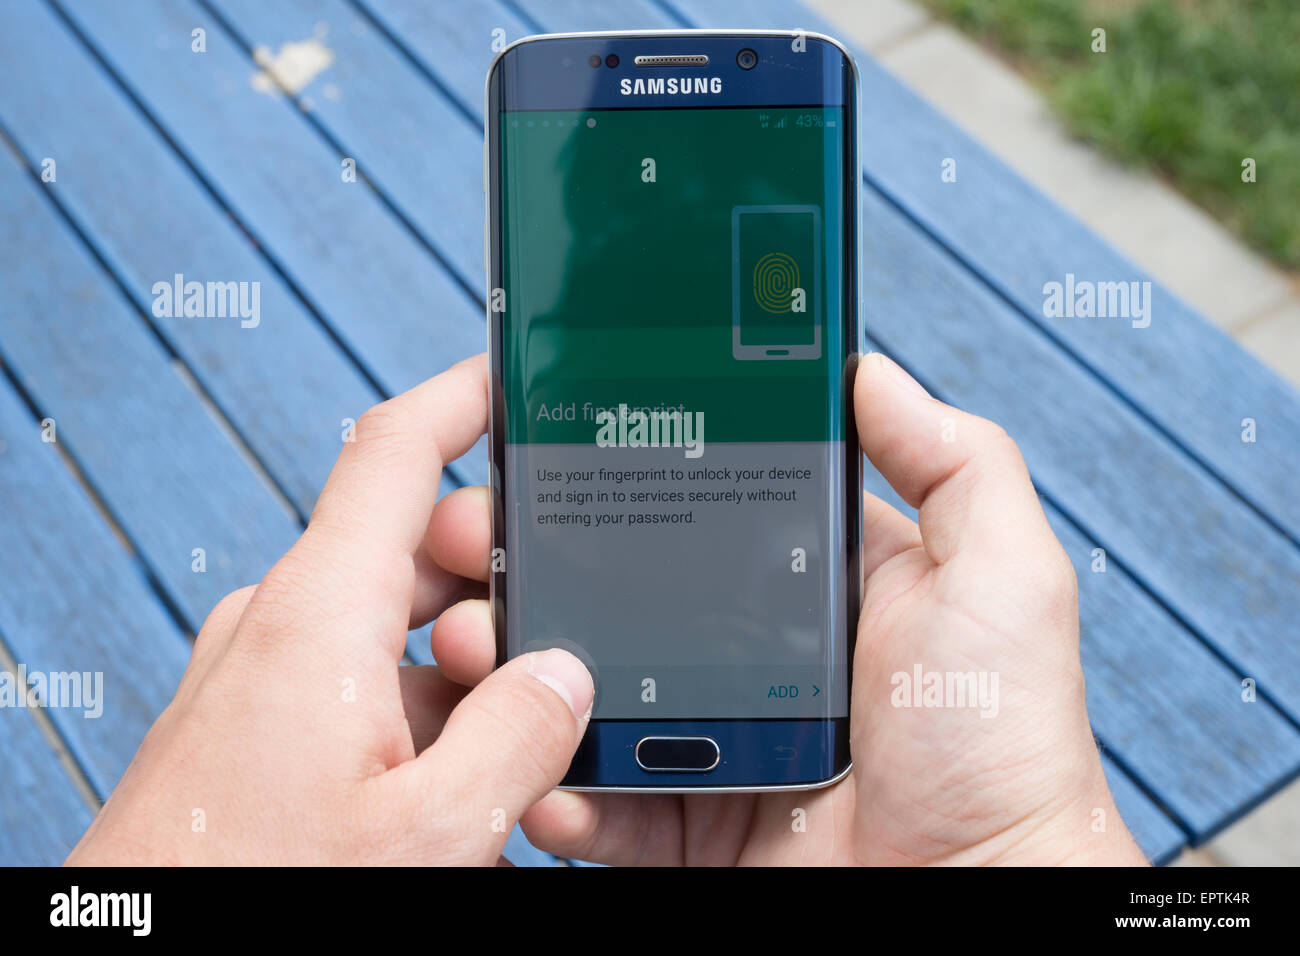 Samsung S6 edge using phone completing final stage setup